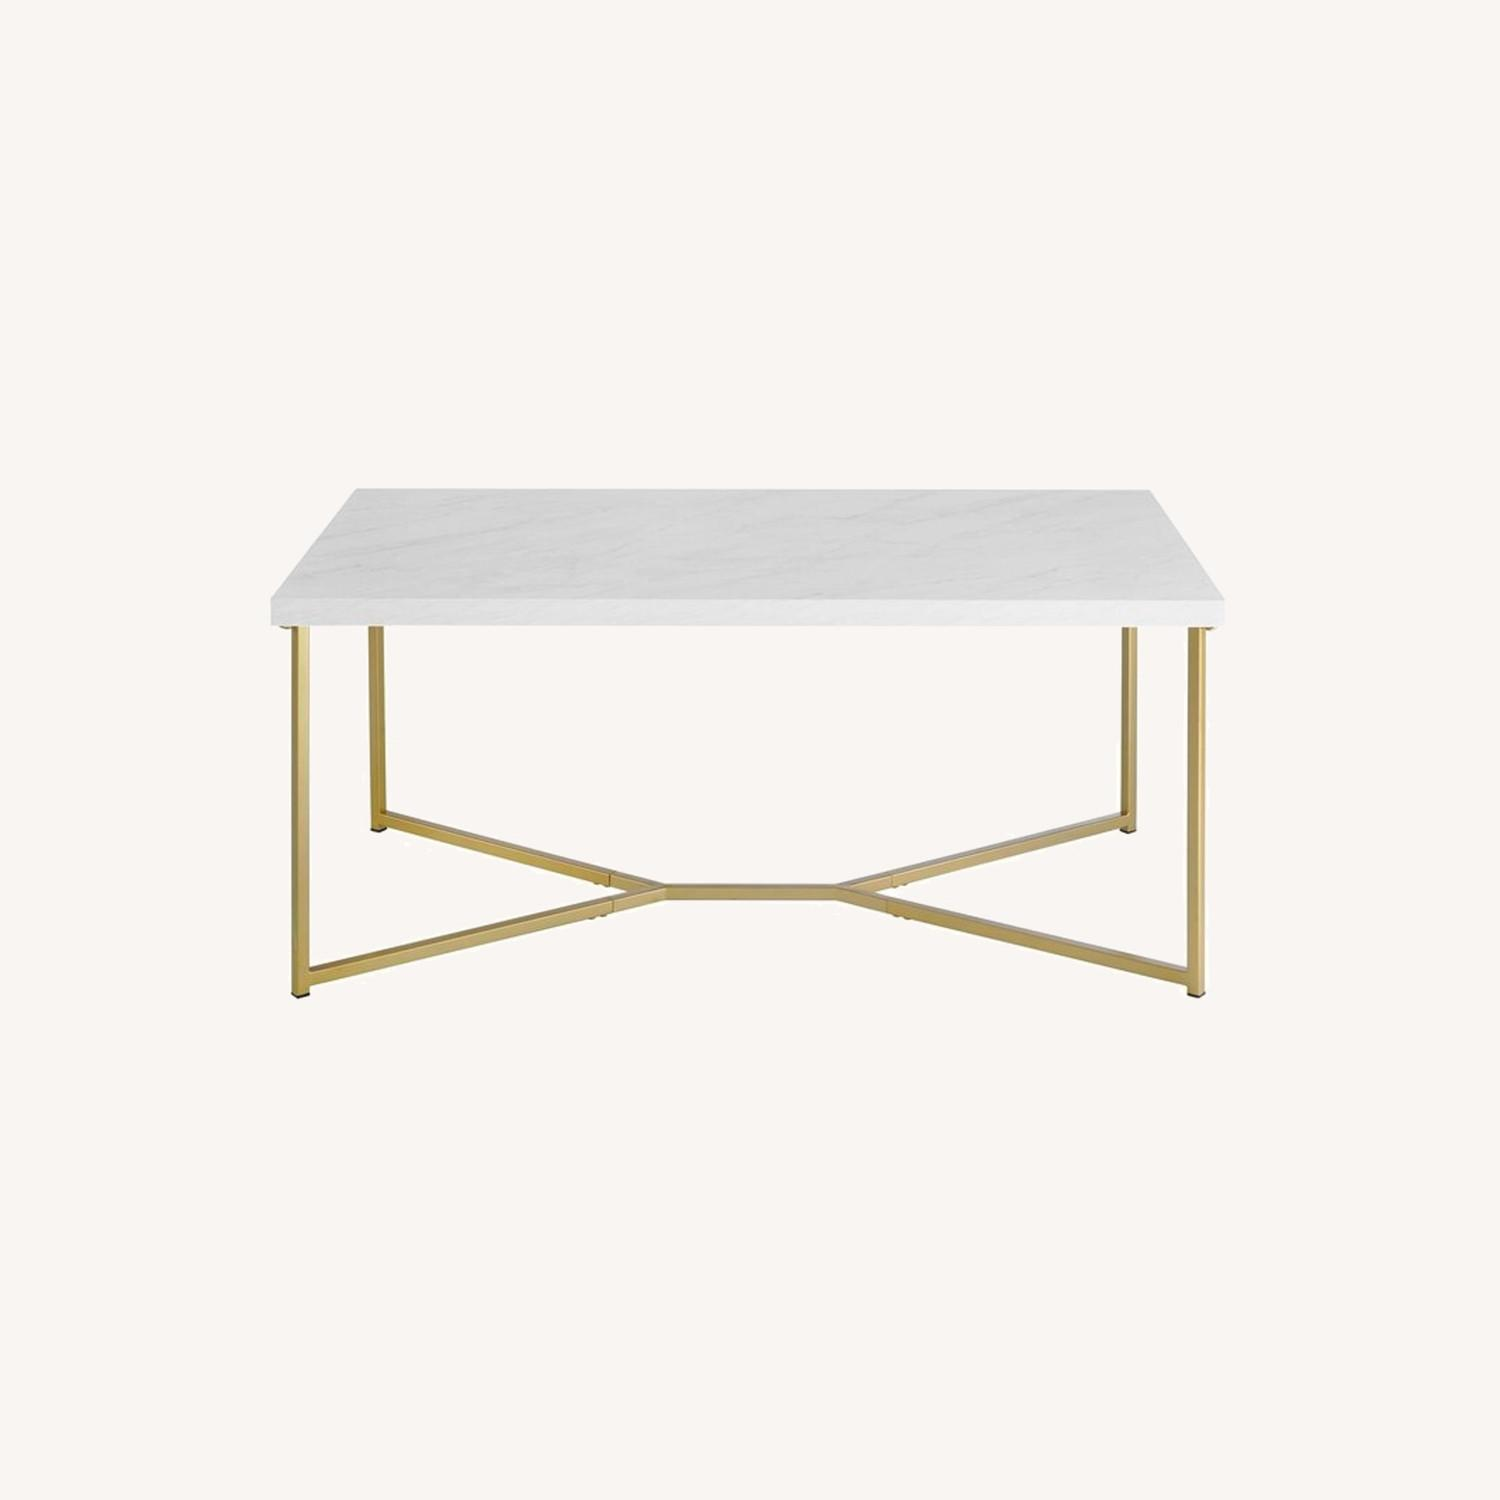 Wayfair Faux White Marble Coffee Table - image-0